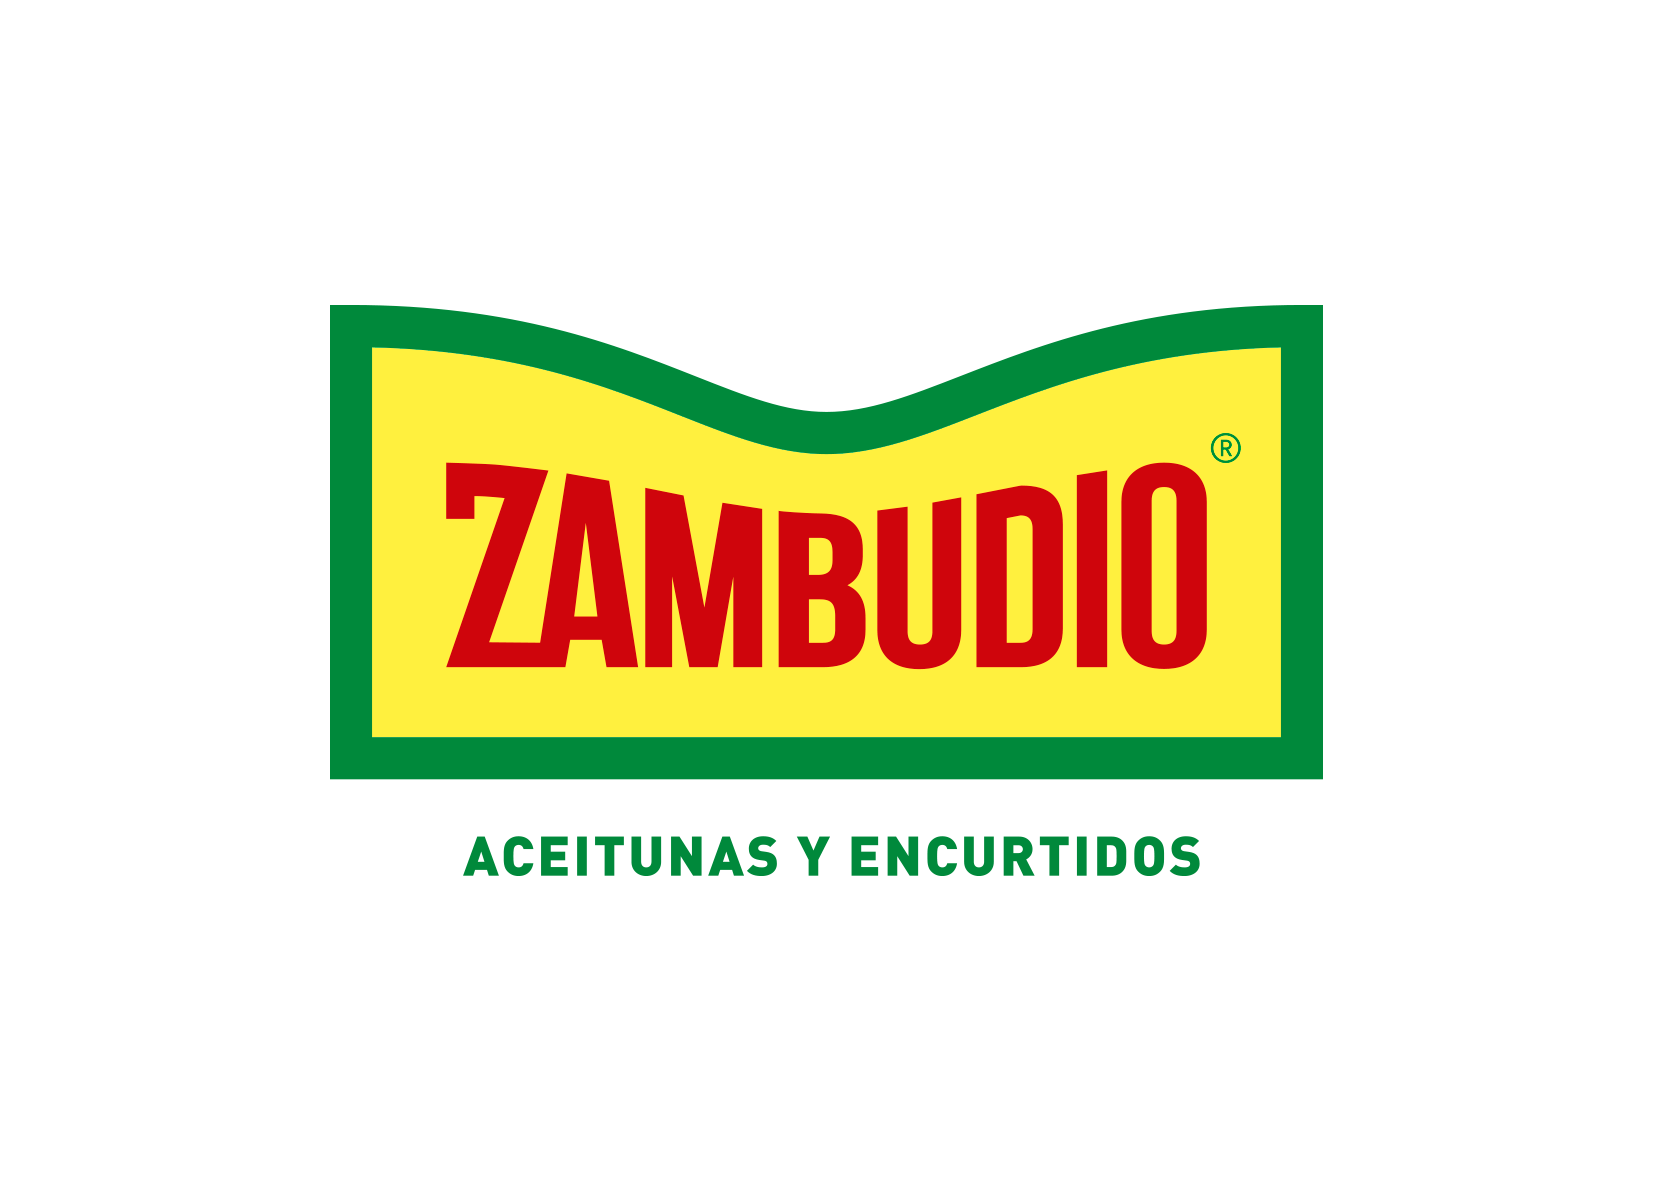 Logo zambudio version 01